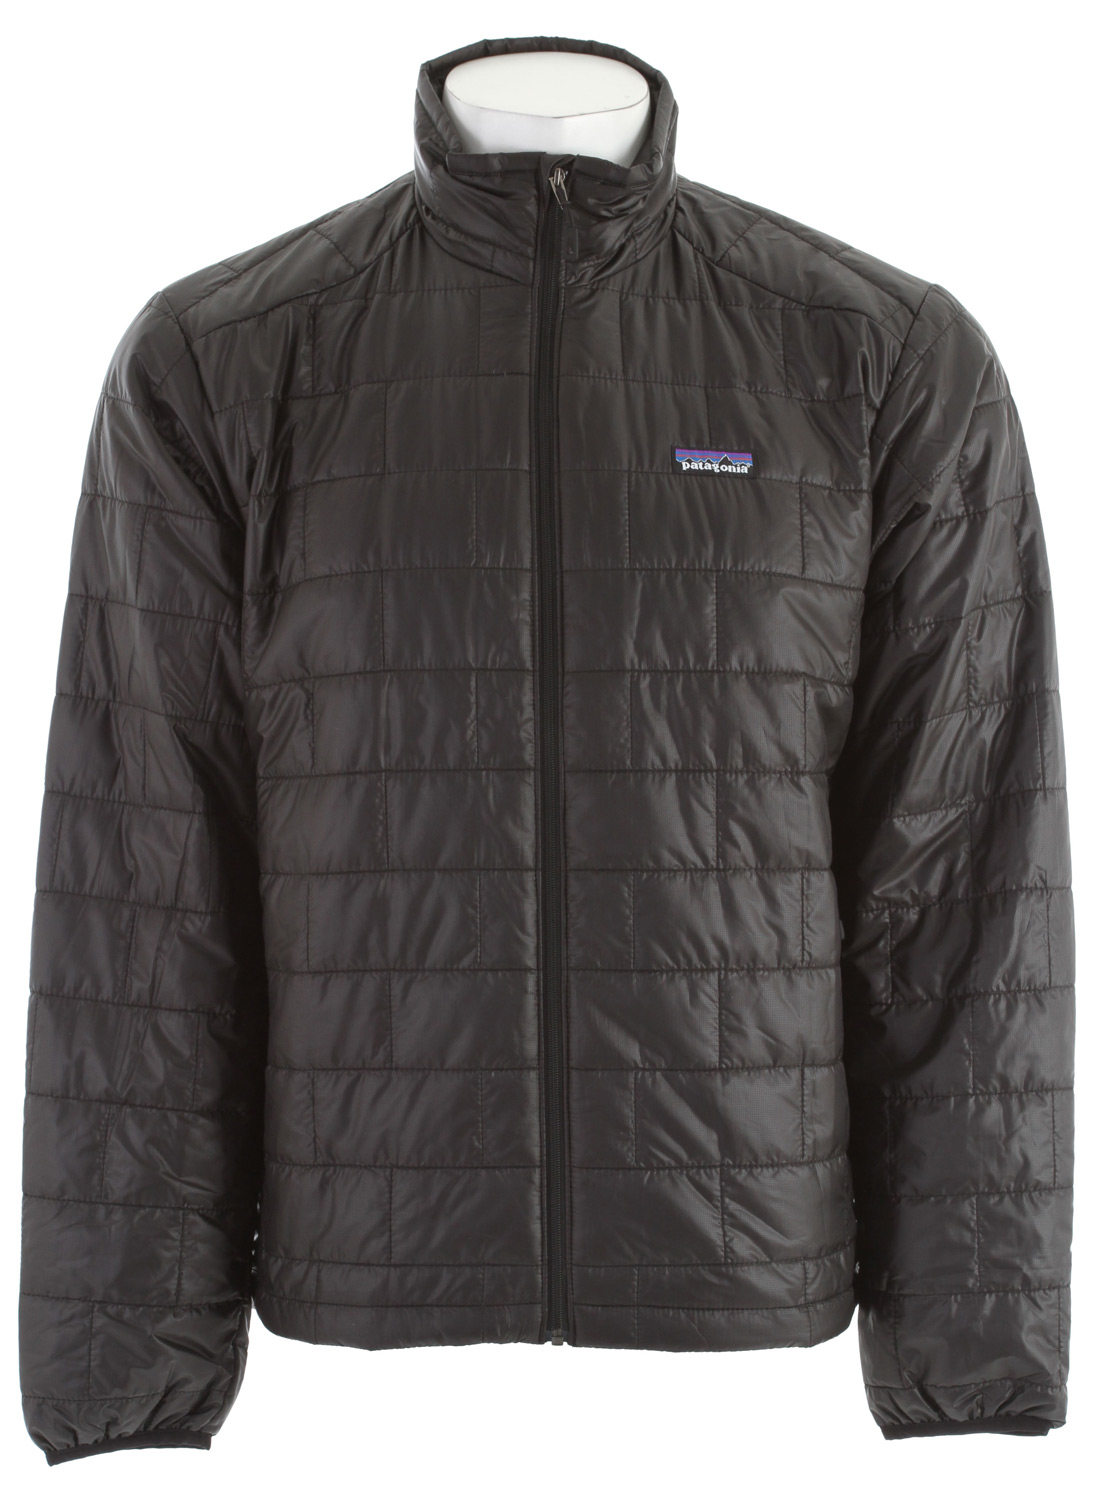 The Patagonia Nano Puff Jacket is warm, incredibly lightweight, highly compressible, and can be worn as insulation or outerwear in cold climates. Its windproof and water-resistant 100% recycled polyester shell is isulated with 60-g PrimaLoft One polyesterKey Features of the Patagonia Nano Puff Jacket: Lightweight recycled polyester ripstop shell with a Deluge DWR (durable water repellent) finish Lightweight 60-g PrimaLoft One polyester insulation provides excellent warmth and compressibility Unique quilt pattern holds insulation in place, which promotes durability and longevity Pockets: Two zippered handwarmers; one internal zippered chest pocket, doubles as a stuff sack and has a carabiner clip-in loop Dual-adjust drawcord hem seals in warmth Regular fit (12.5 oz) 354 g Fabric: Shell: 1.15-oz 15-denier 100% recycled polyester. Insulation: 60-g PrimaLoft One polyester. Lining: 1.45-oz 22-denier 100% recycled polyester. Shell and lining have a Deluge DWR finish. - $138.95